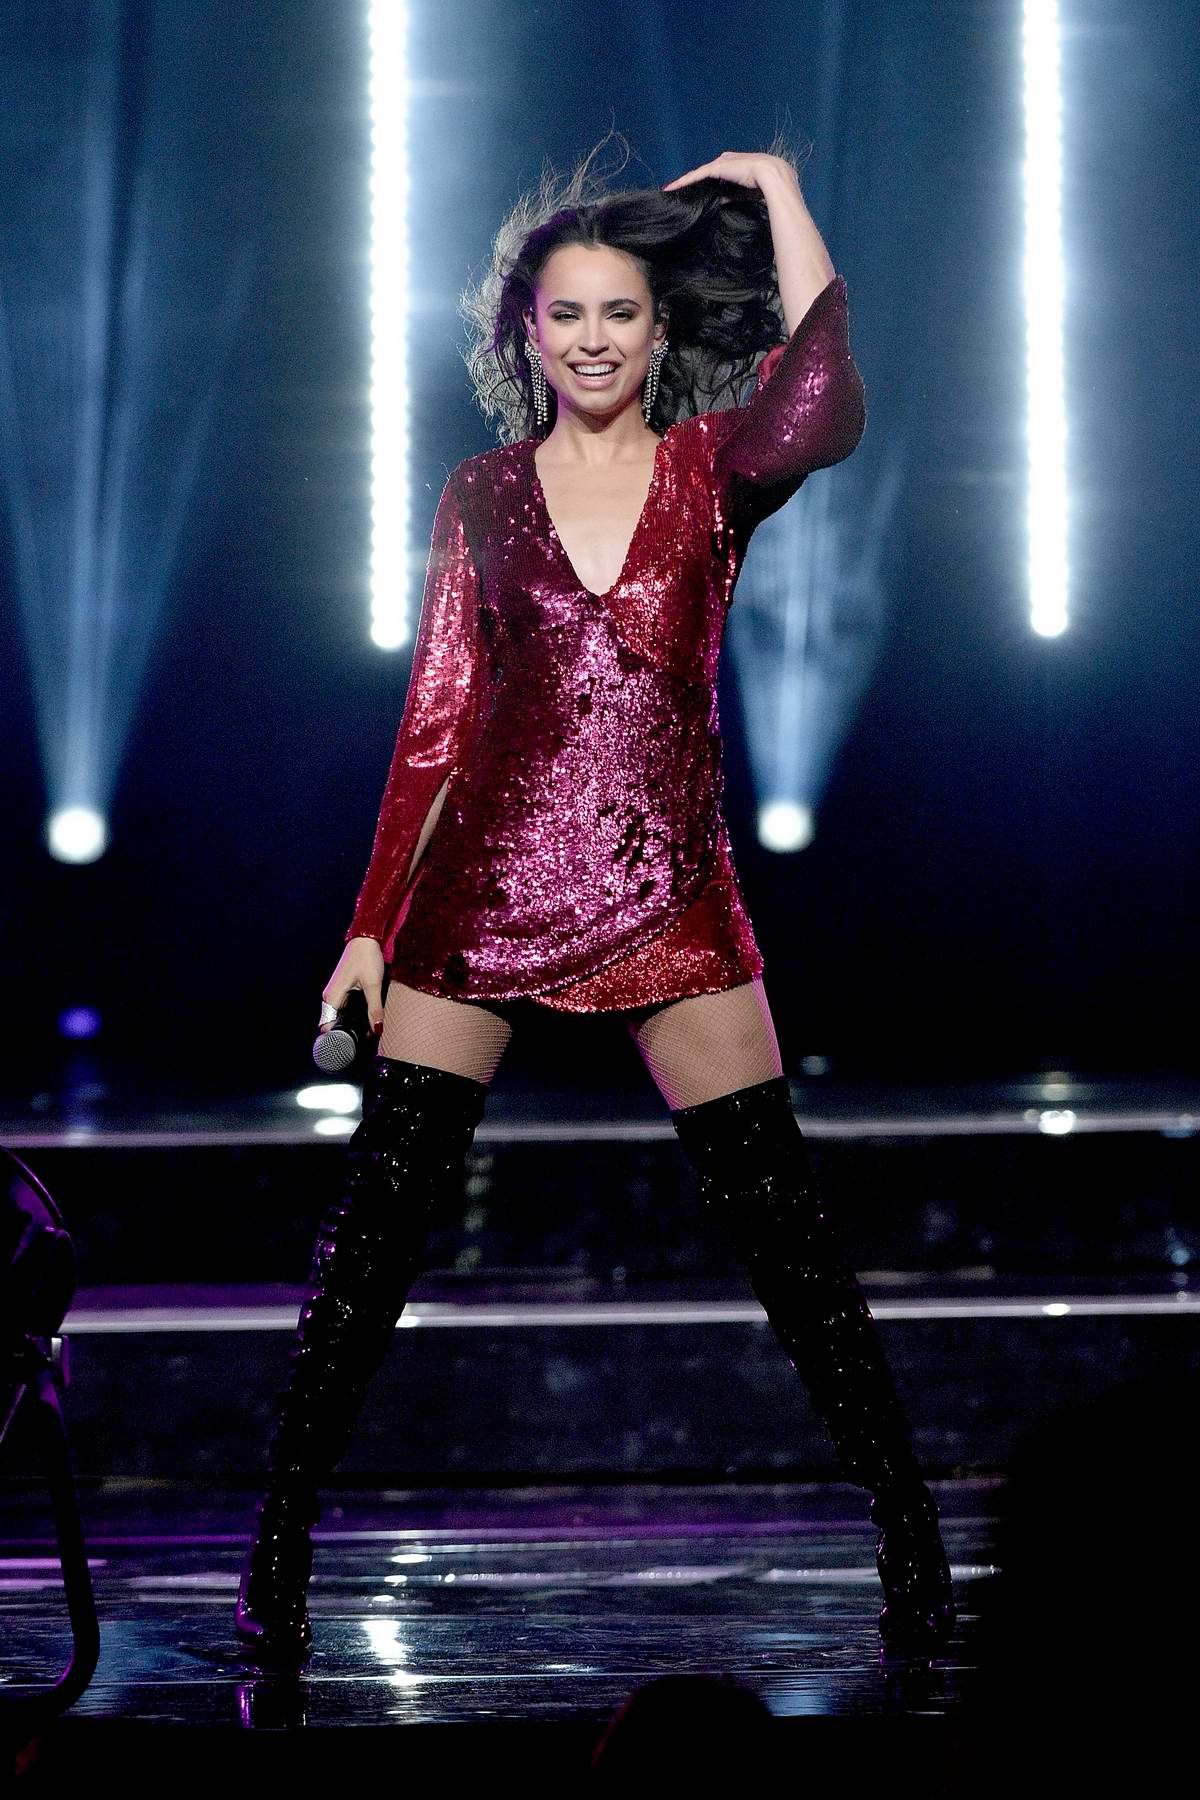 Sofia Carson performs at the WE Day UN 2018 in New York City